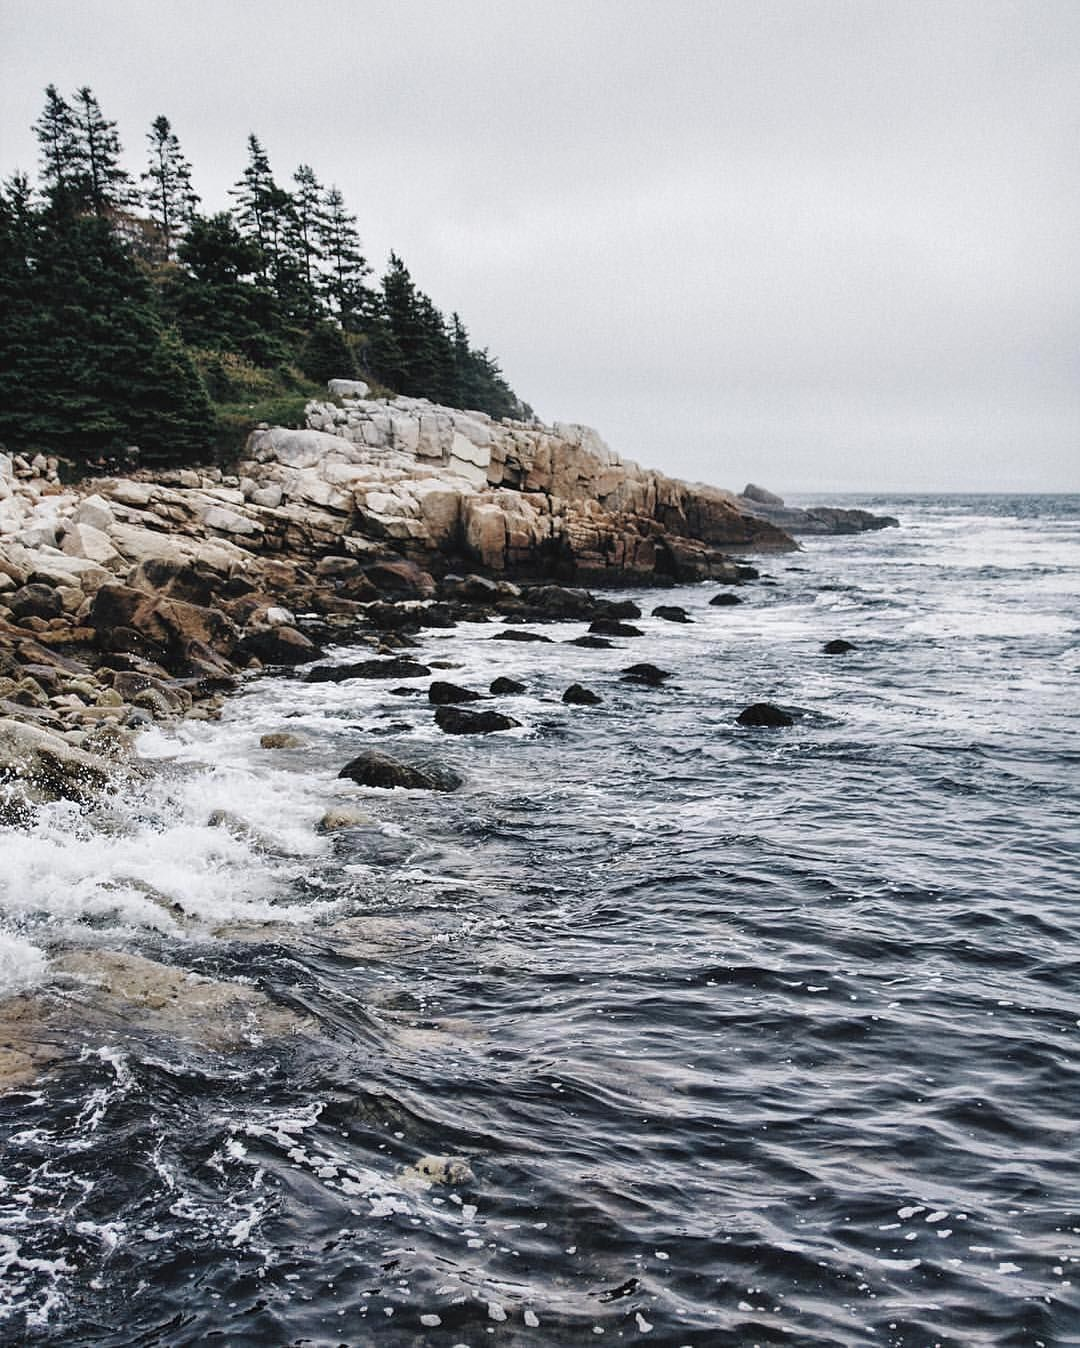 from @perksofbeing_hj   . . #herringcove #novascotia #cove #waves #바다 #파도 #ocean #eastcoast #halifaxnoise #자연 #nature #naturephotography #travel #explore #travelphotography #여행 #여행스타그램 #포토그래피 #canonphotography #t2i #550d #foggyday #안개 #캐논 #사진스타그램 #photography #photooftheday #picoftheday #캐나다 #canada